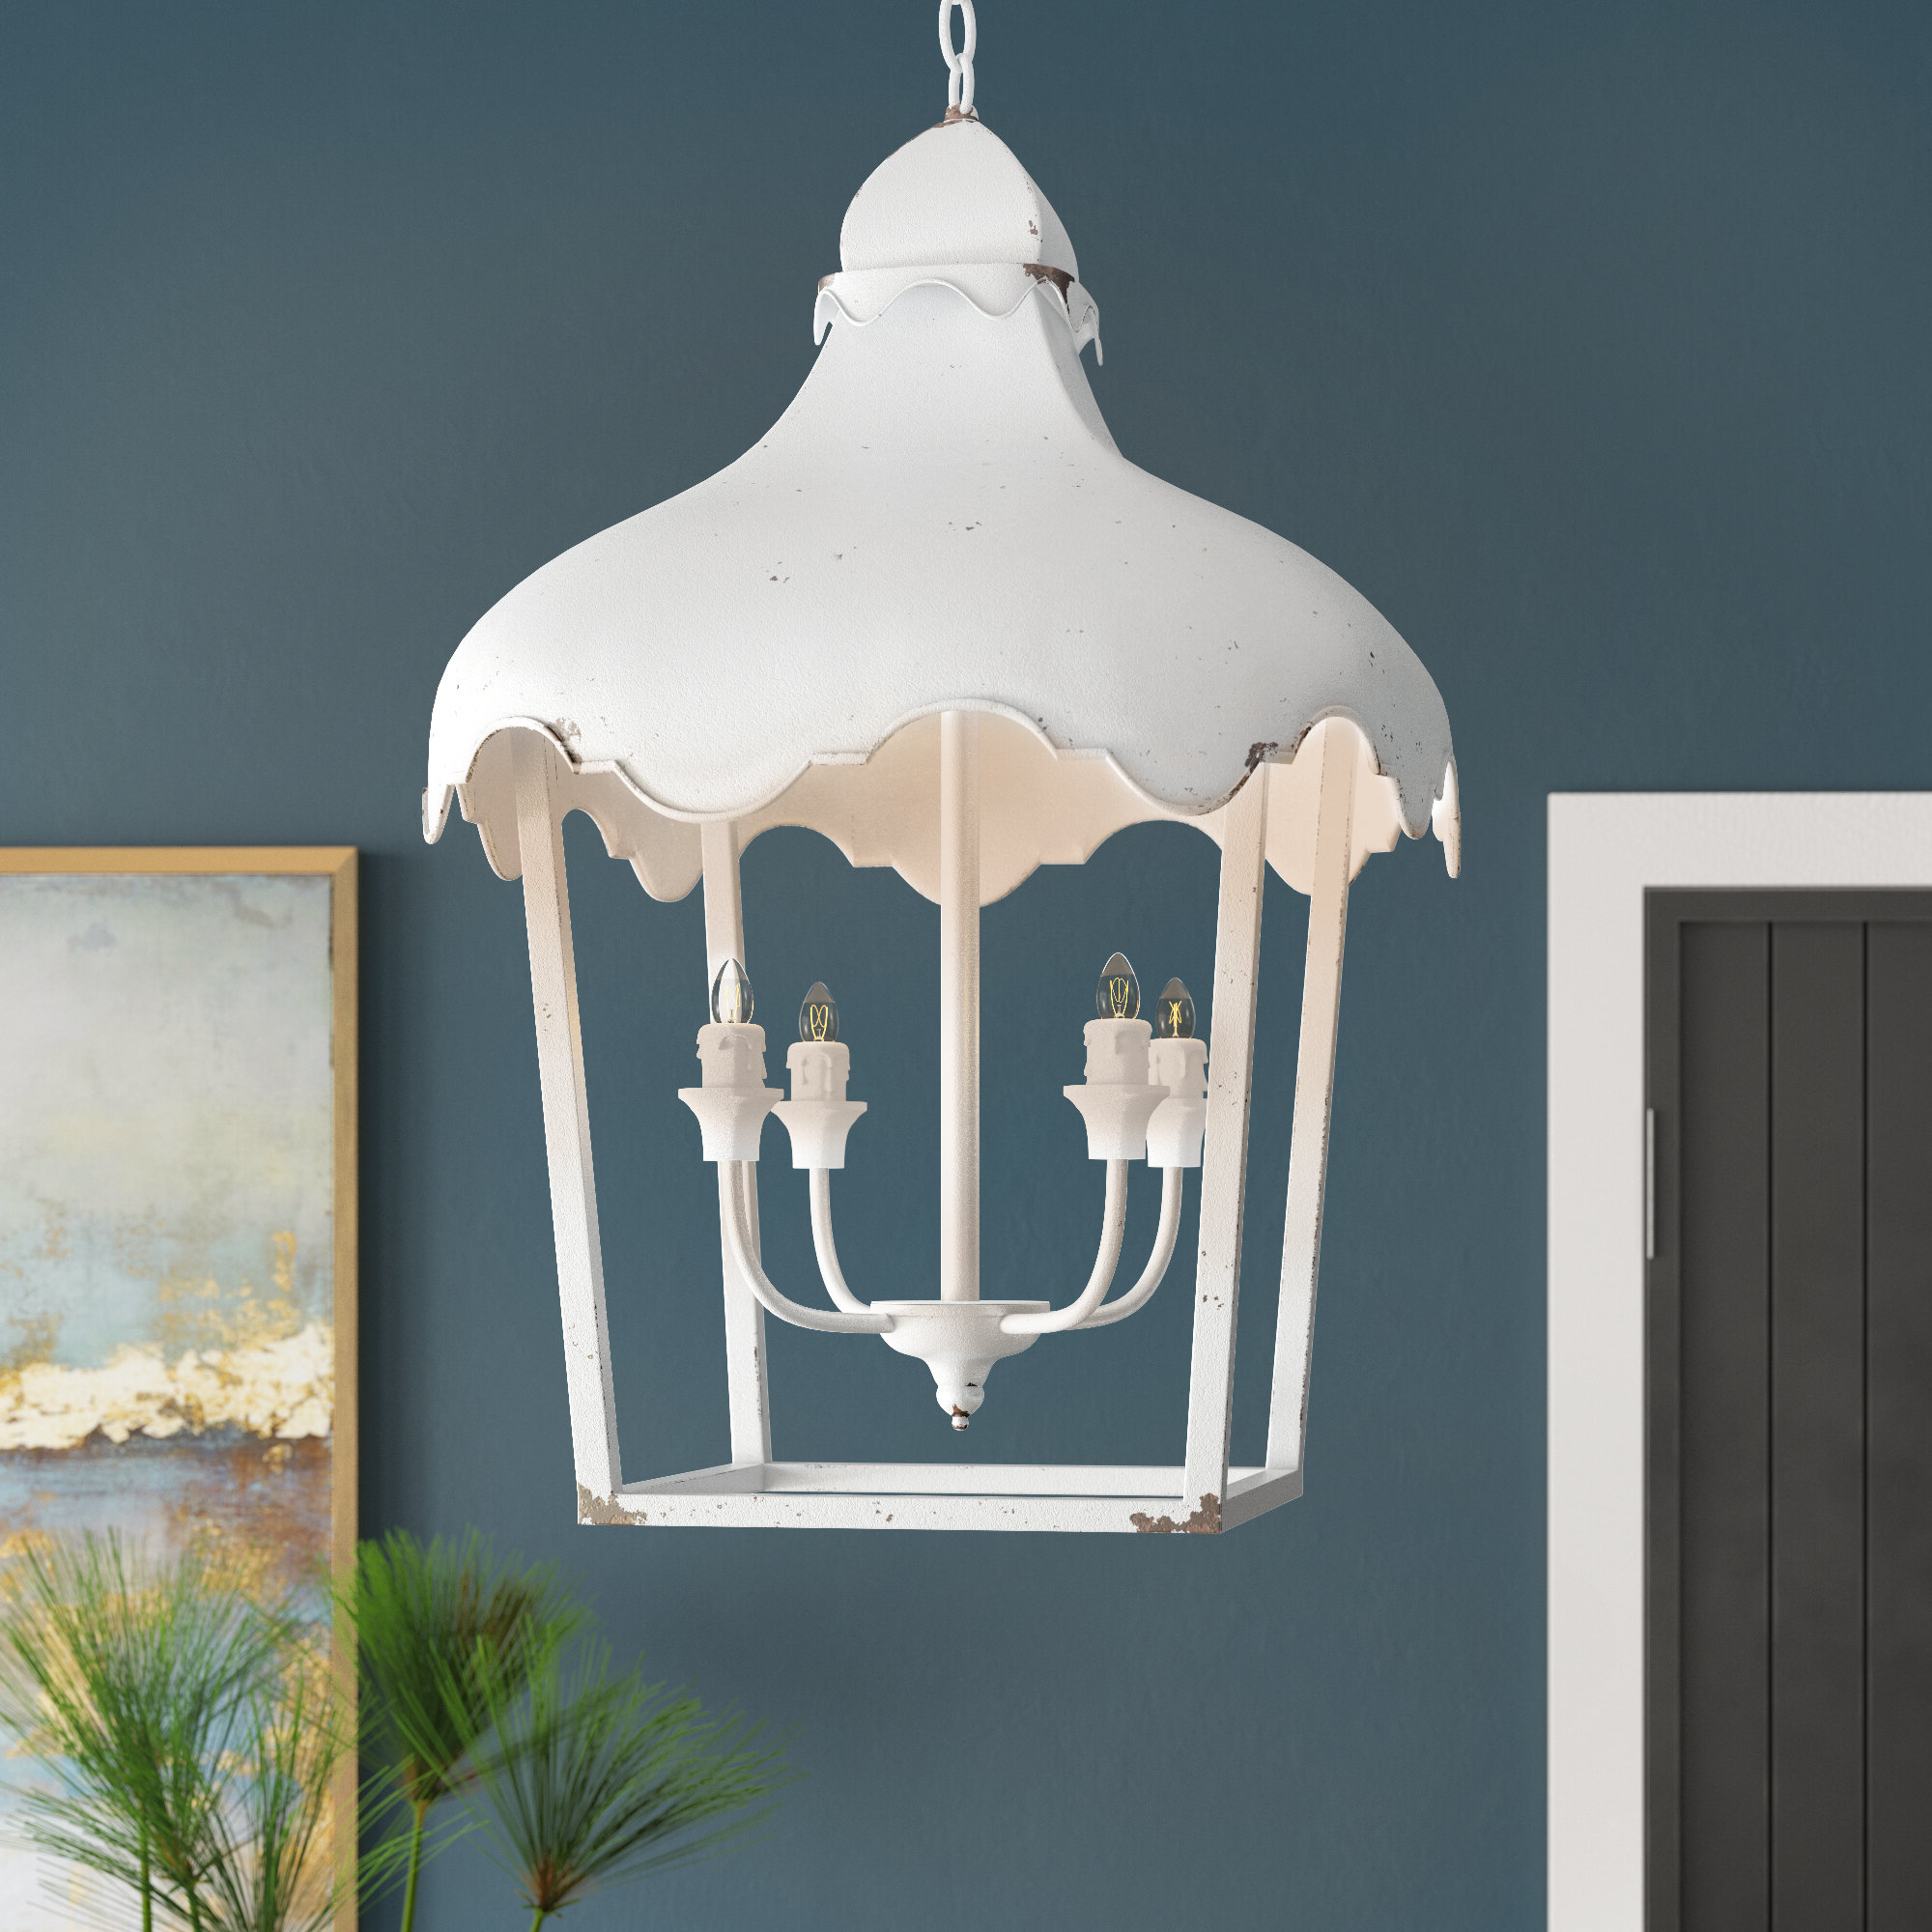 Lussan 4 Light Lantern Geometric Pendant Within Favorite Isoline 2 Light Lantern Geometric Pendants (View 24 of 25)